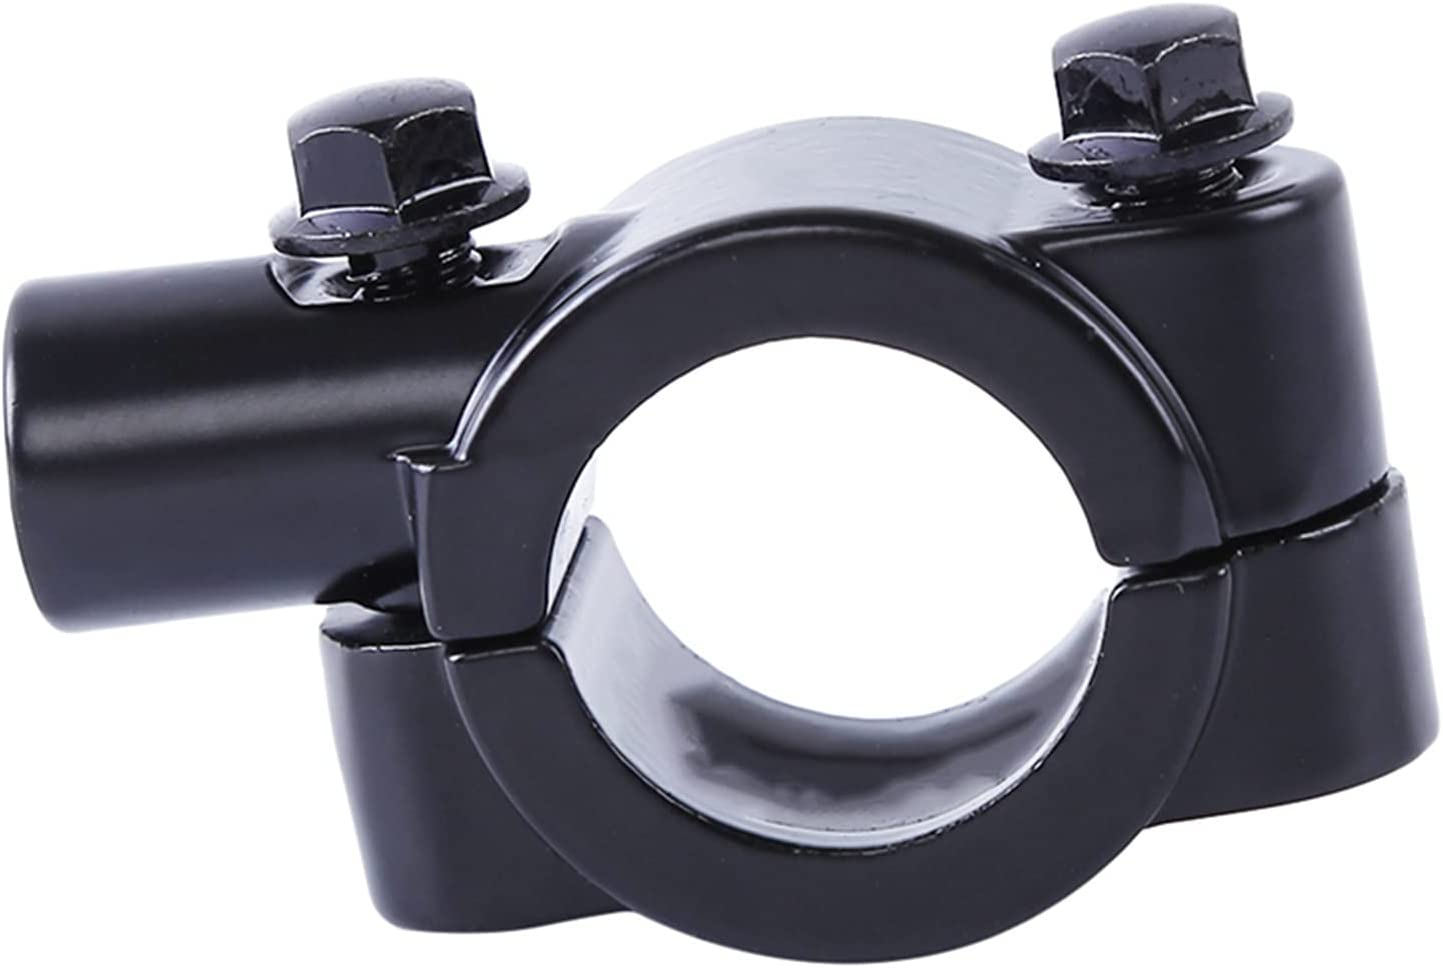 WFTHOD Adjustable Motorcycle Our shop OFFers the best service Save money Handlebar Metal Rear View Mo Mirror